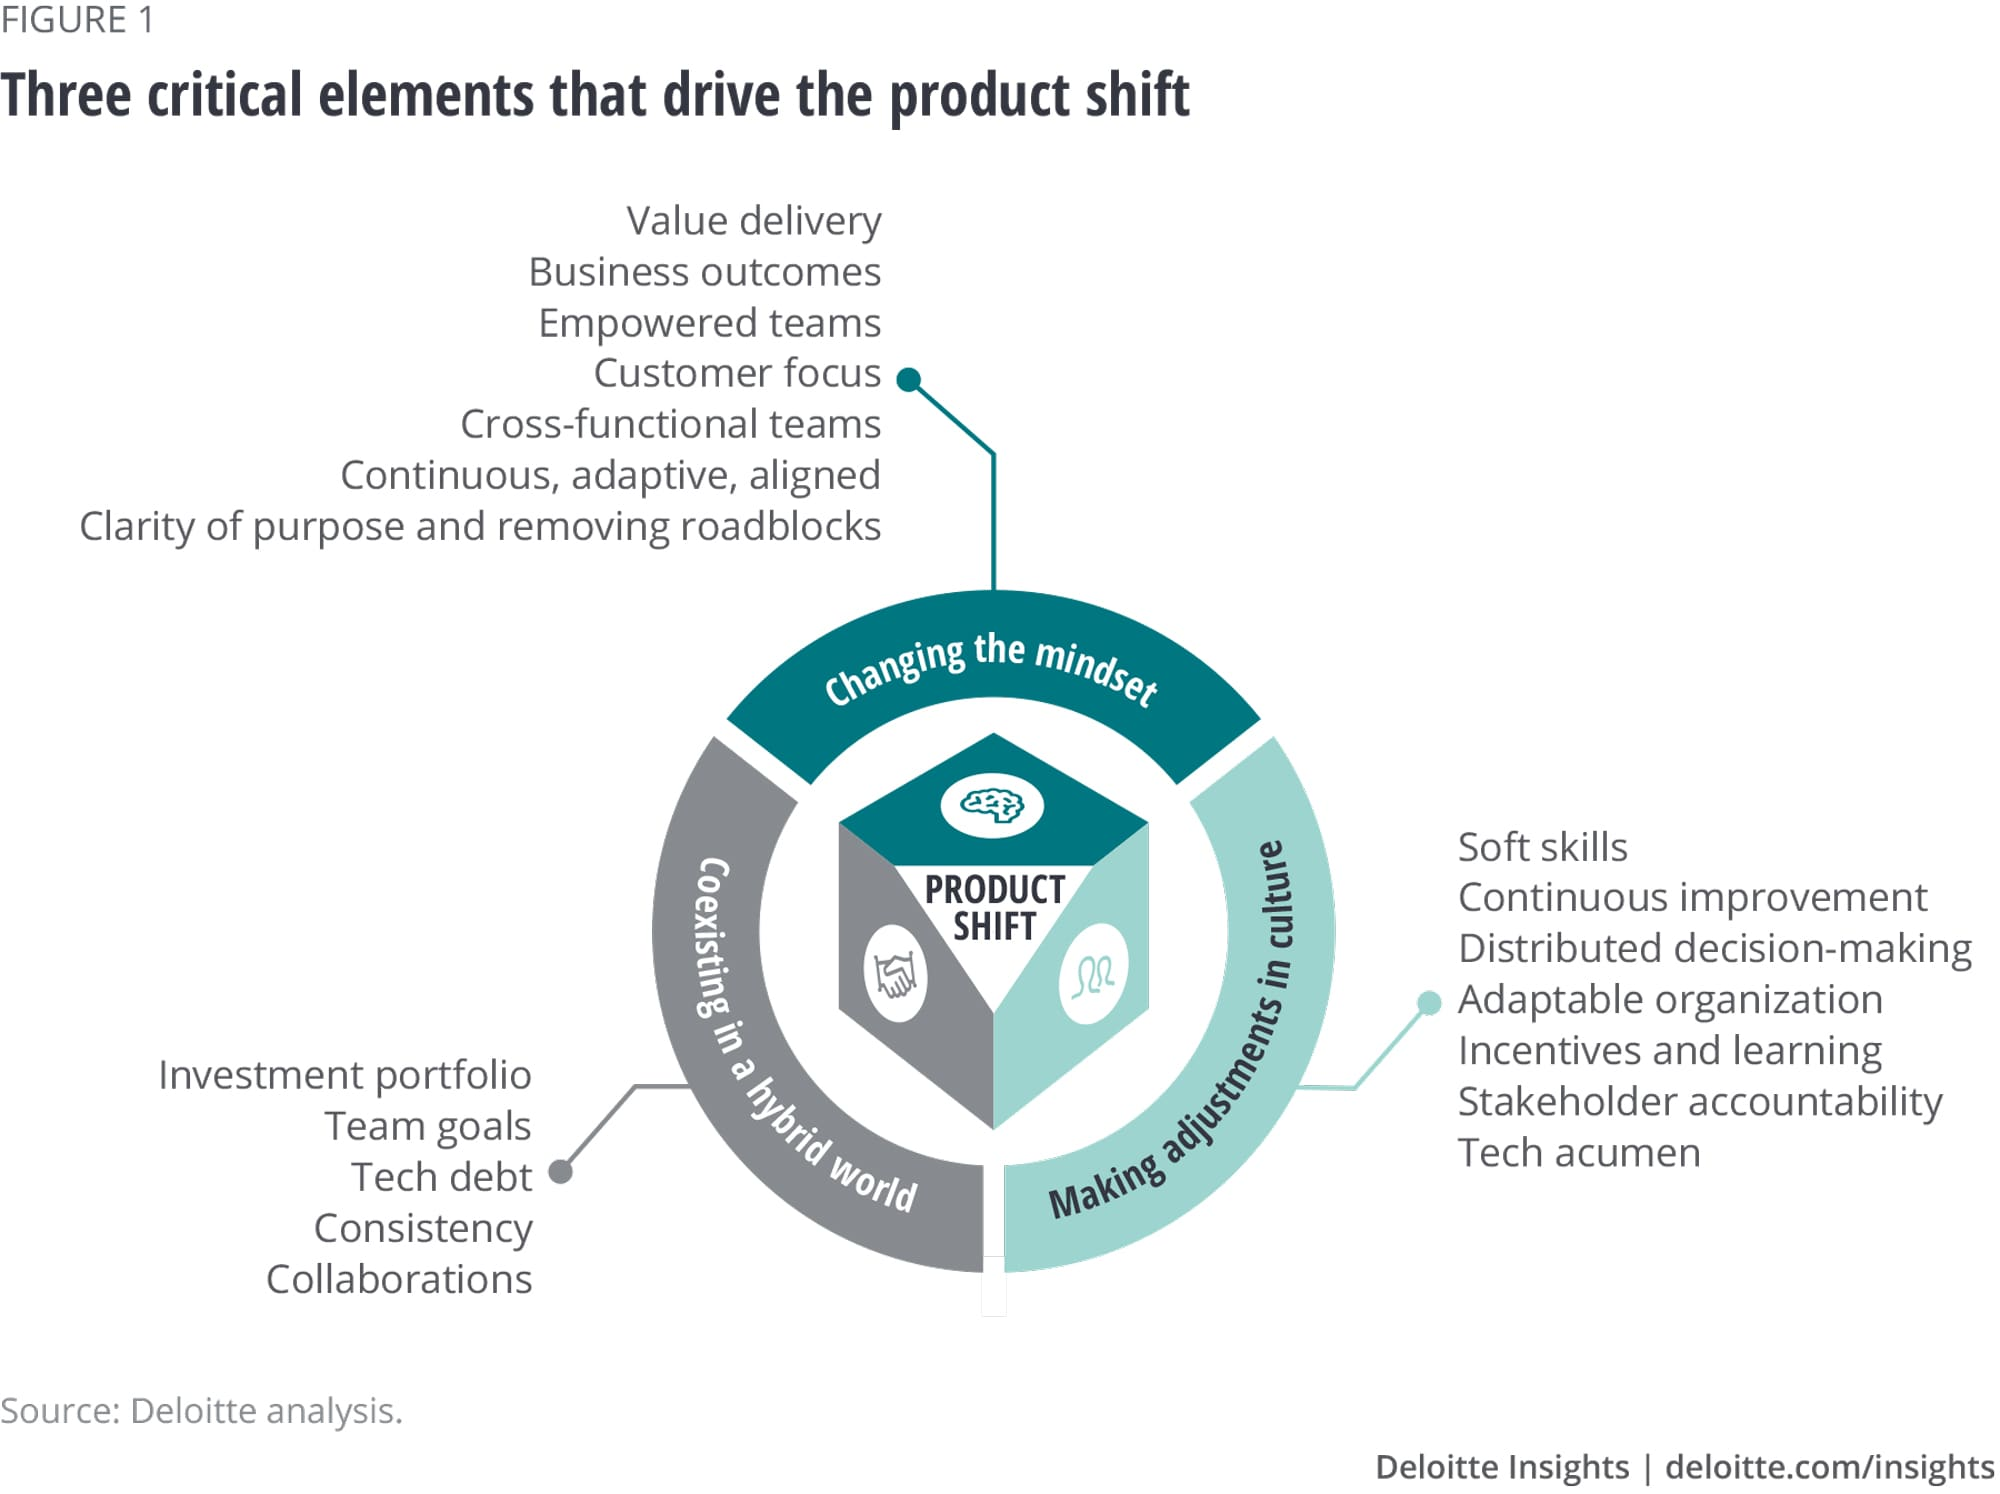 The customer is key in the product operating model